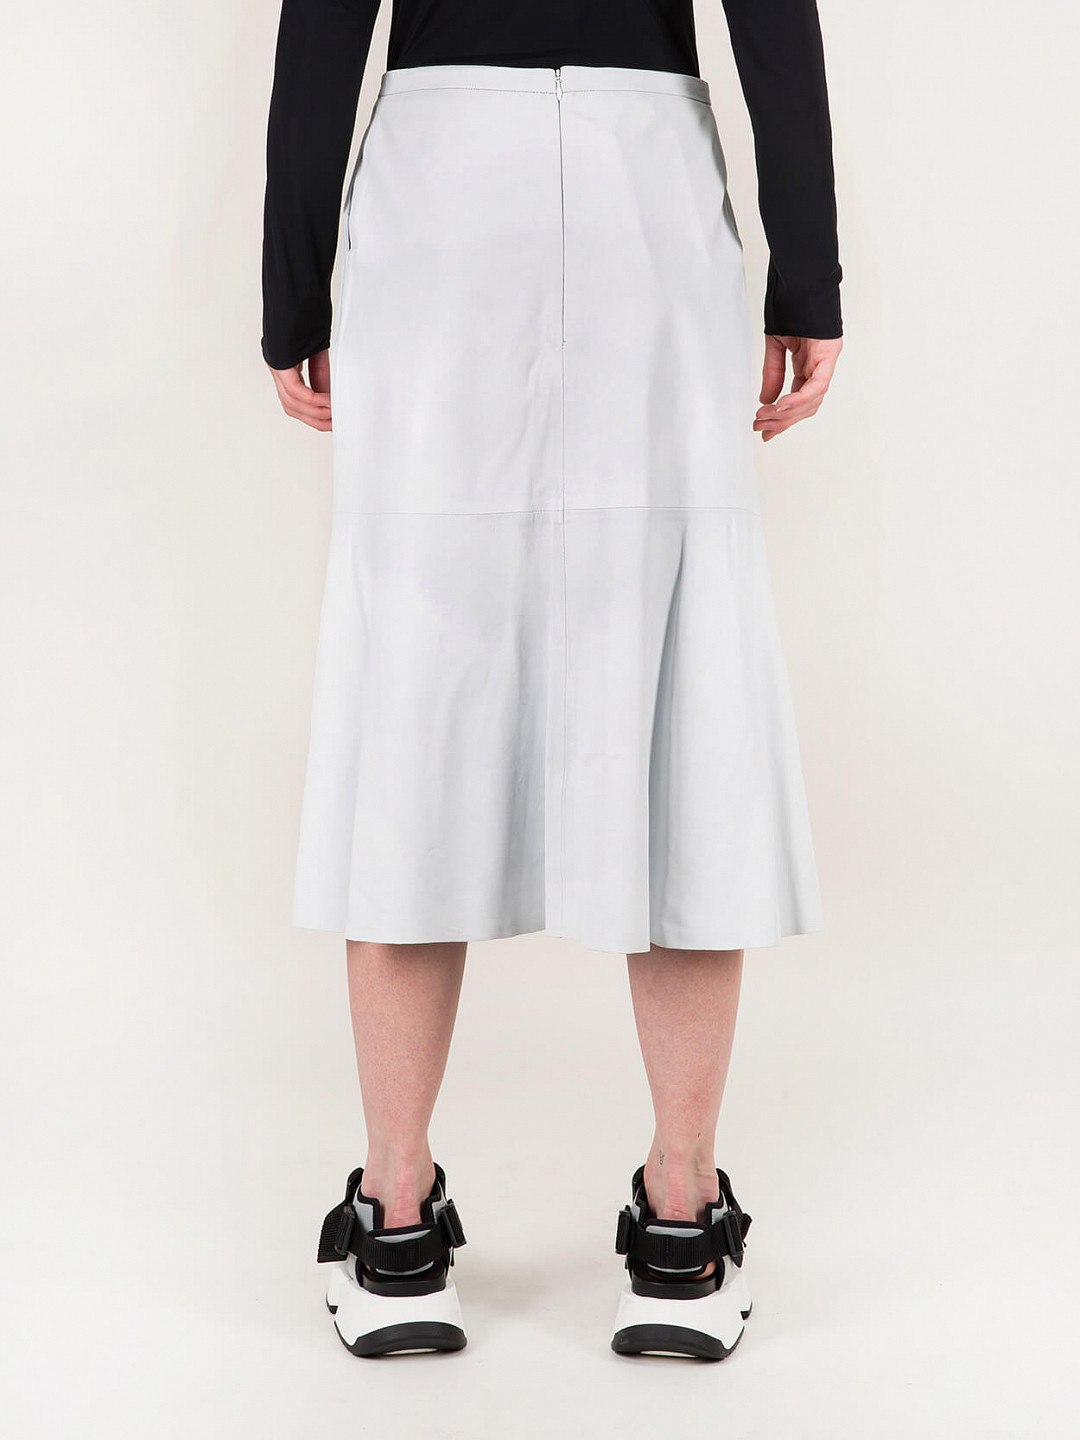 Circular Skirt Leather off white